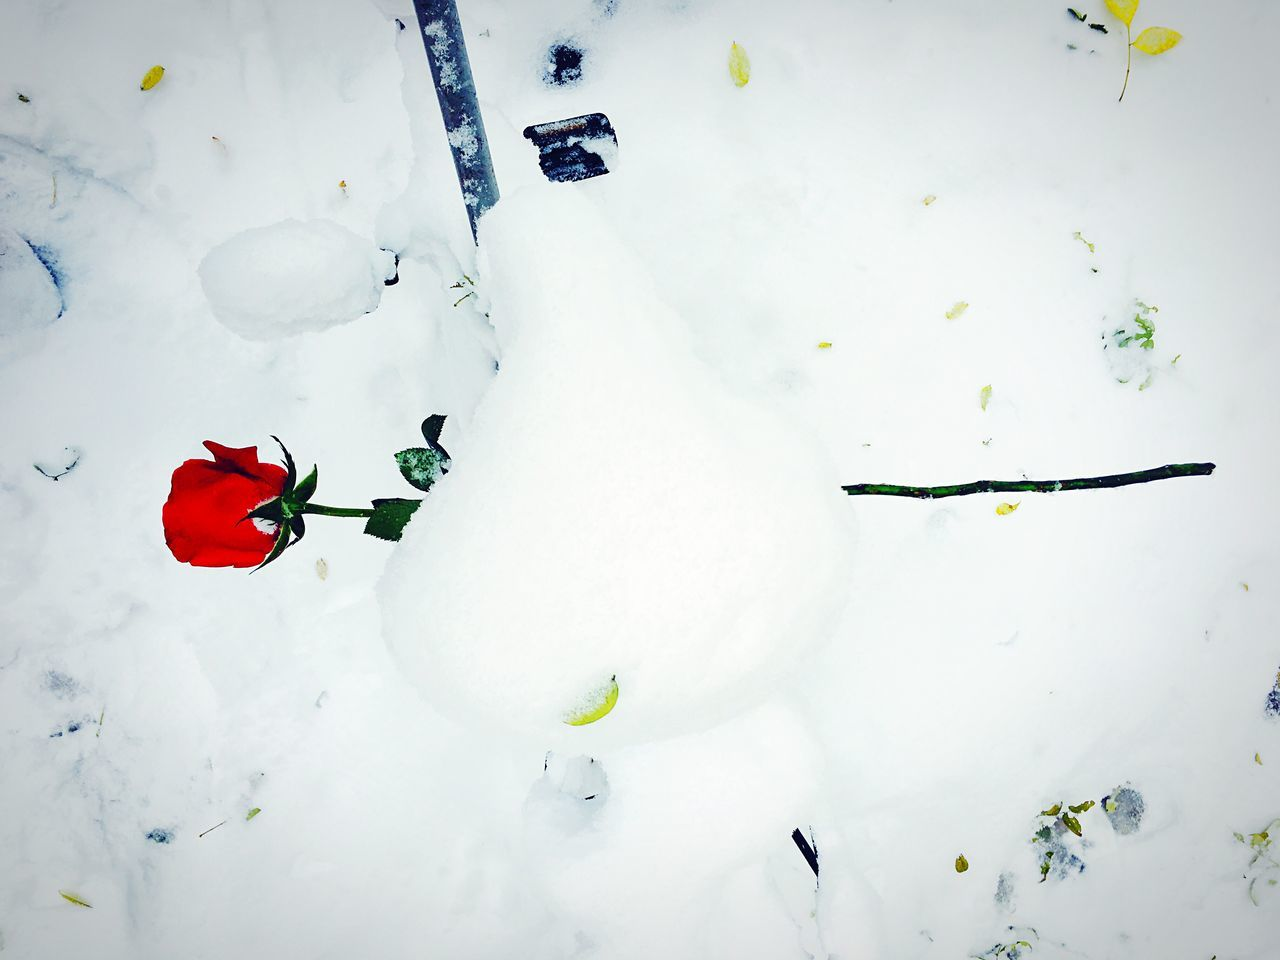 snow, winter, white color, cold temperature, high angle view, nature, day, red, outdoors, full length, flower, beauty in nature, no people, freshness